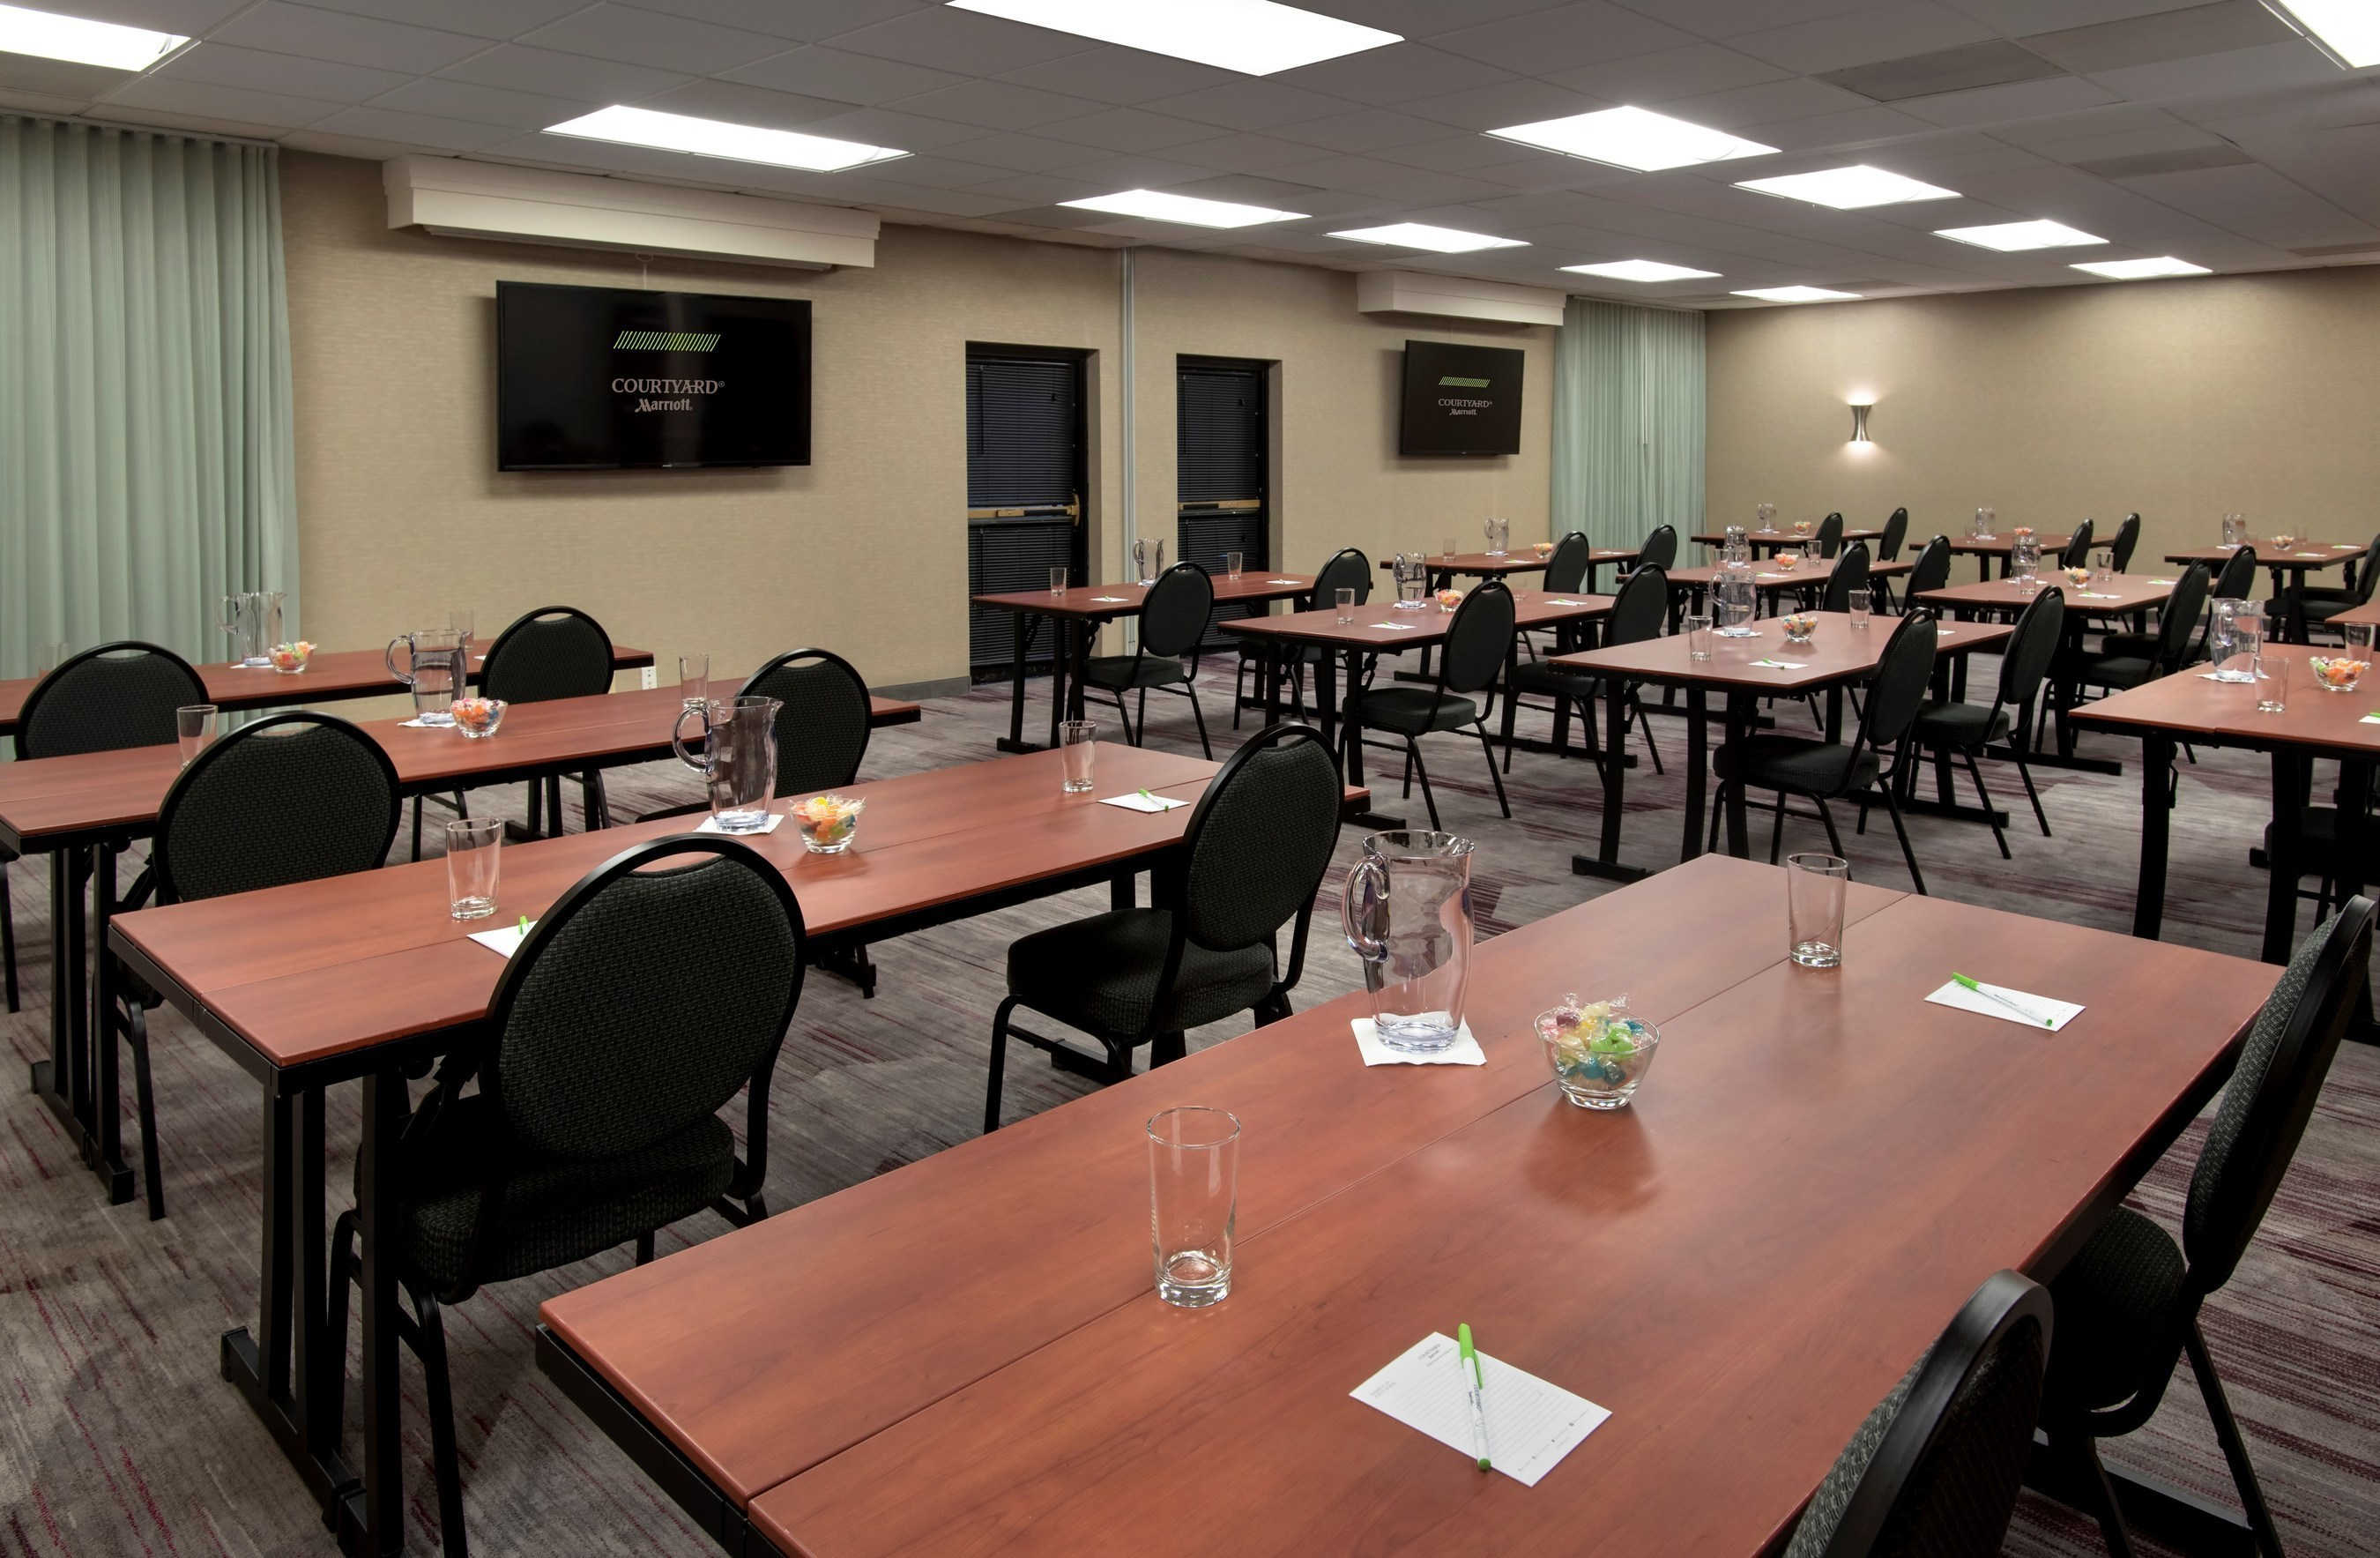 Courtyard Mt. Laurel has just renovated its two meeting rooms boasting a combined 1,200 square feet. The reimagined event space now features a modern color palette, new carpet, enhanced AV and an air wall for extra flexibility. Complimentary Wi-Fi is available in both venues. For information or to make reservations, contact Monica Dougherty, sales executive, at 1-917-355-1338 or visit www.MtLaurelCourtyard.com.